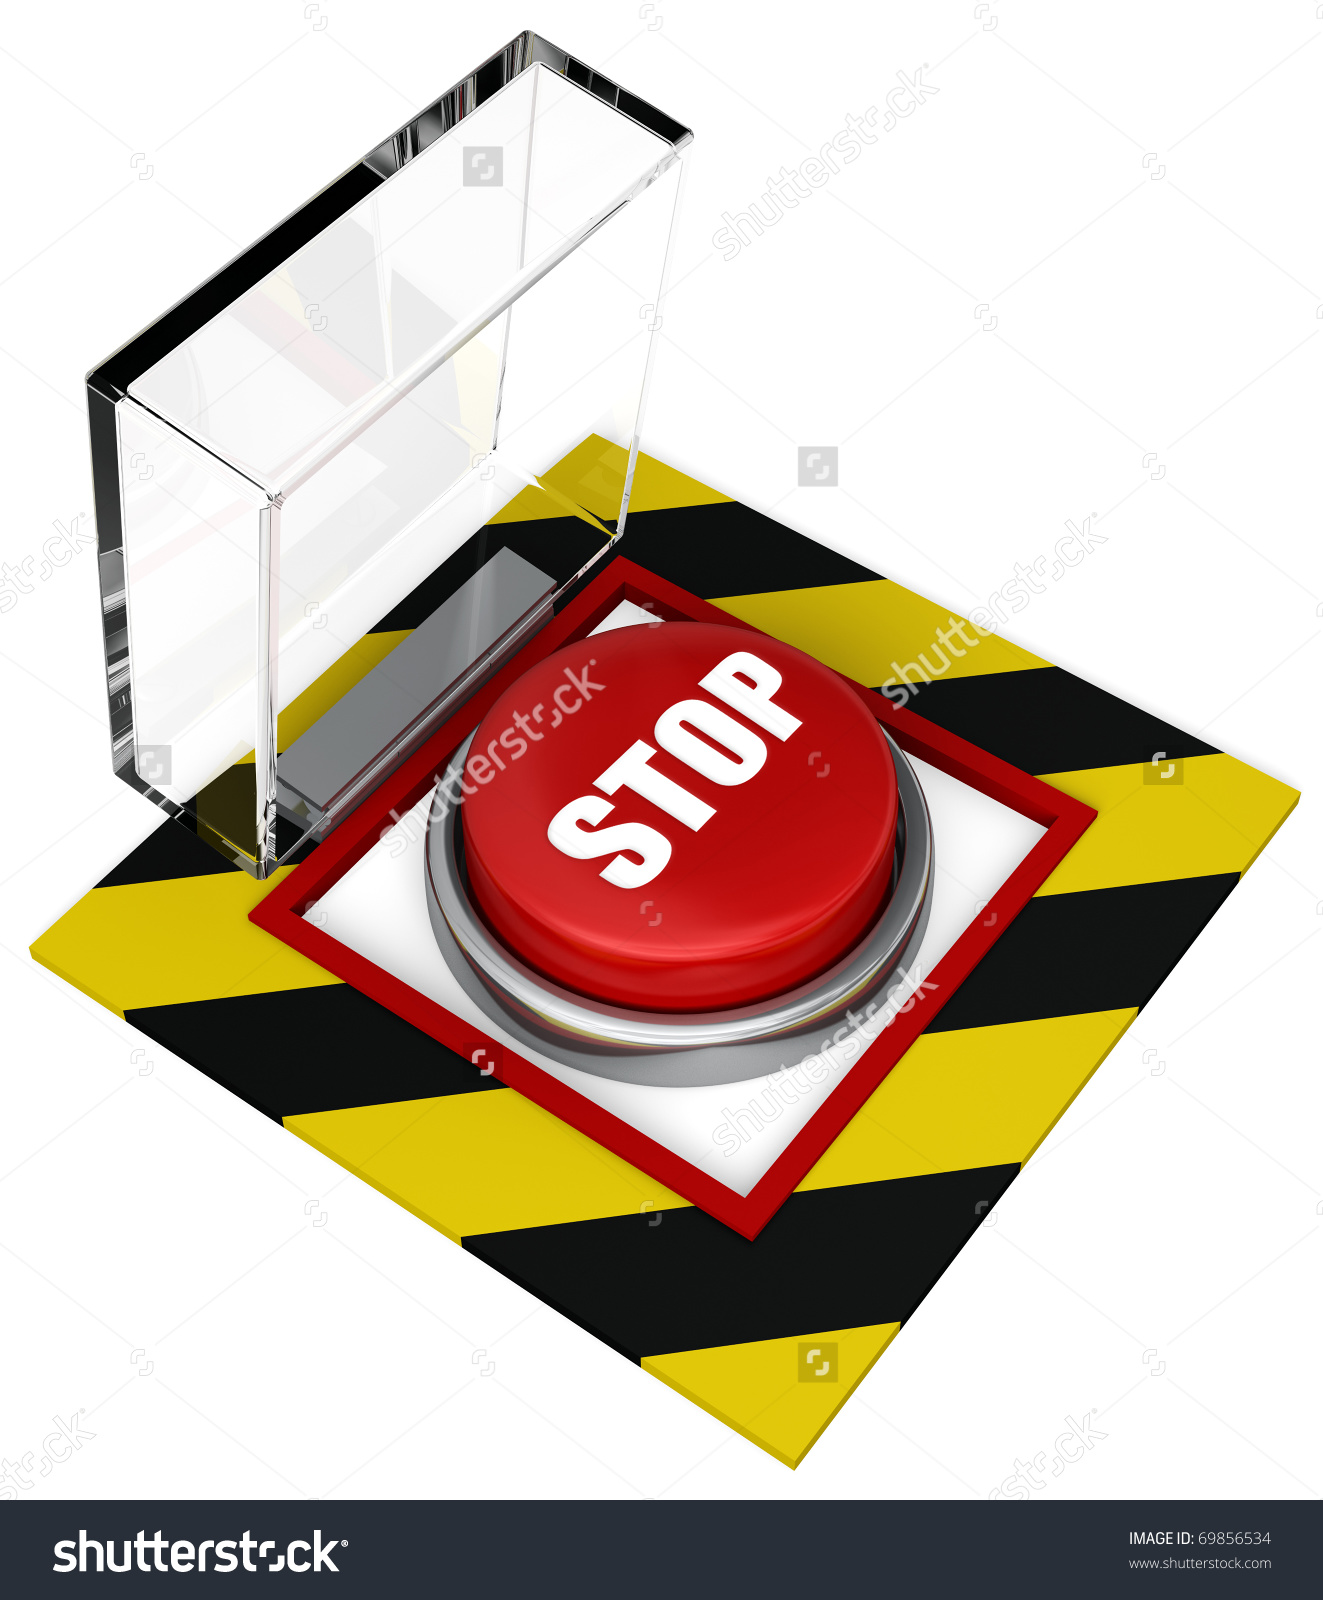 Covered Emergency Stop Button Plastic Cover Stock Illustration.